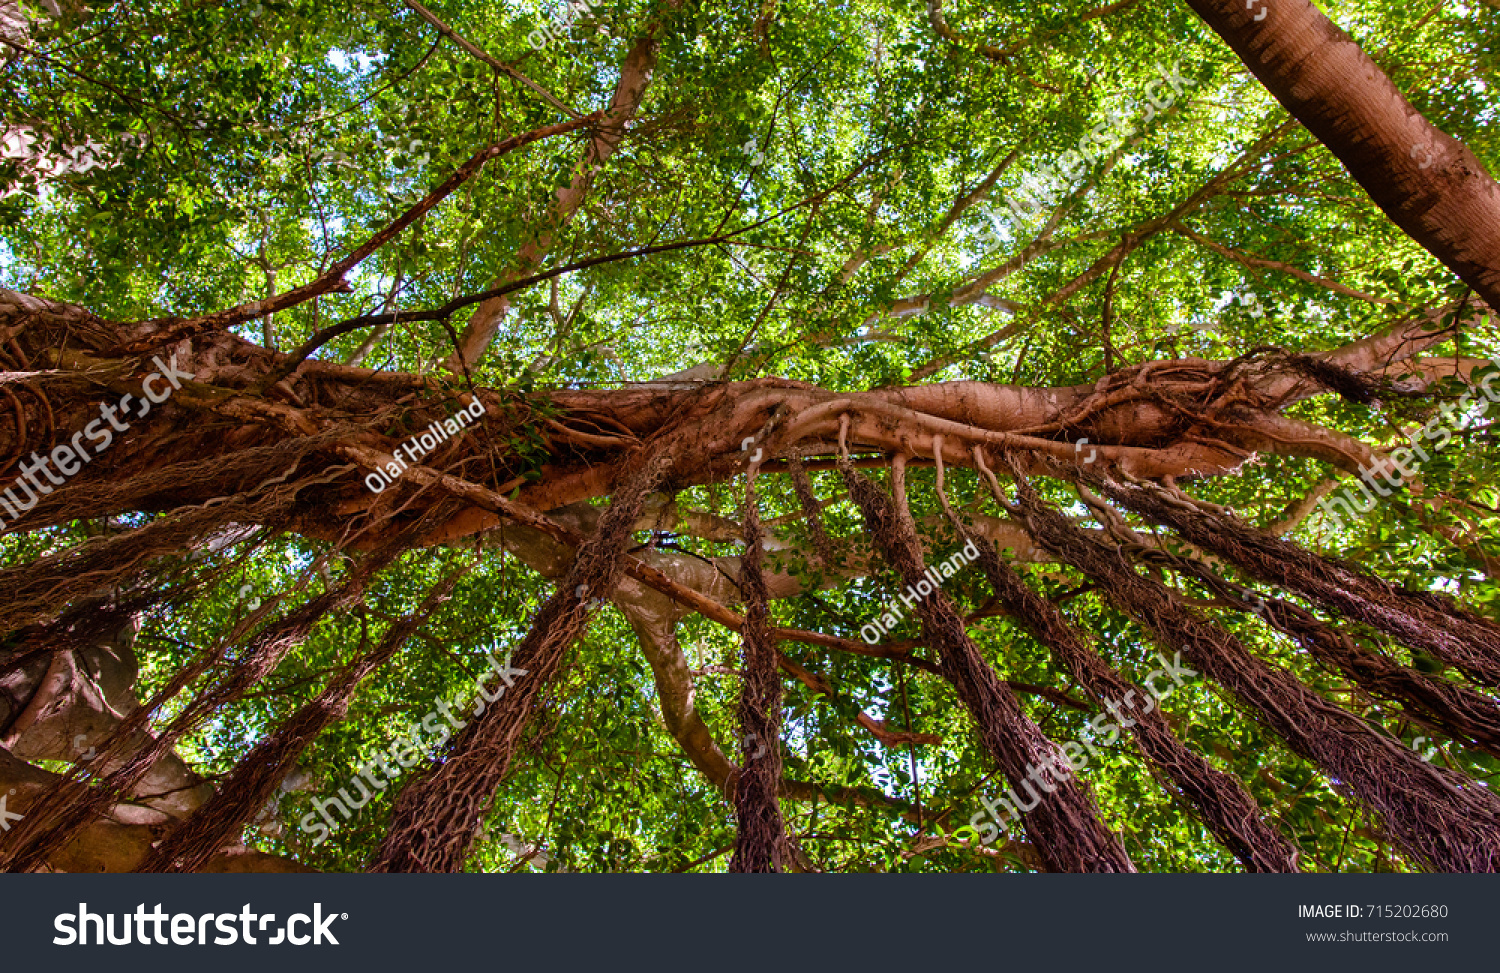 Color Outdoor Image Tree Hanging Roots Stock Photo 715202680 ...